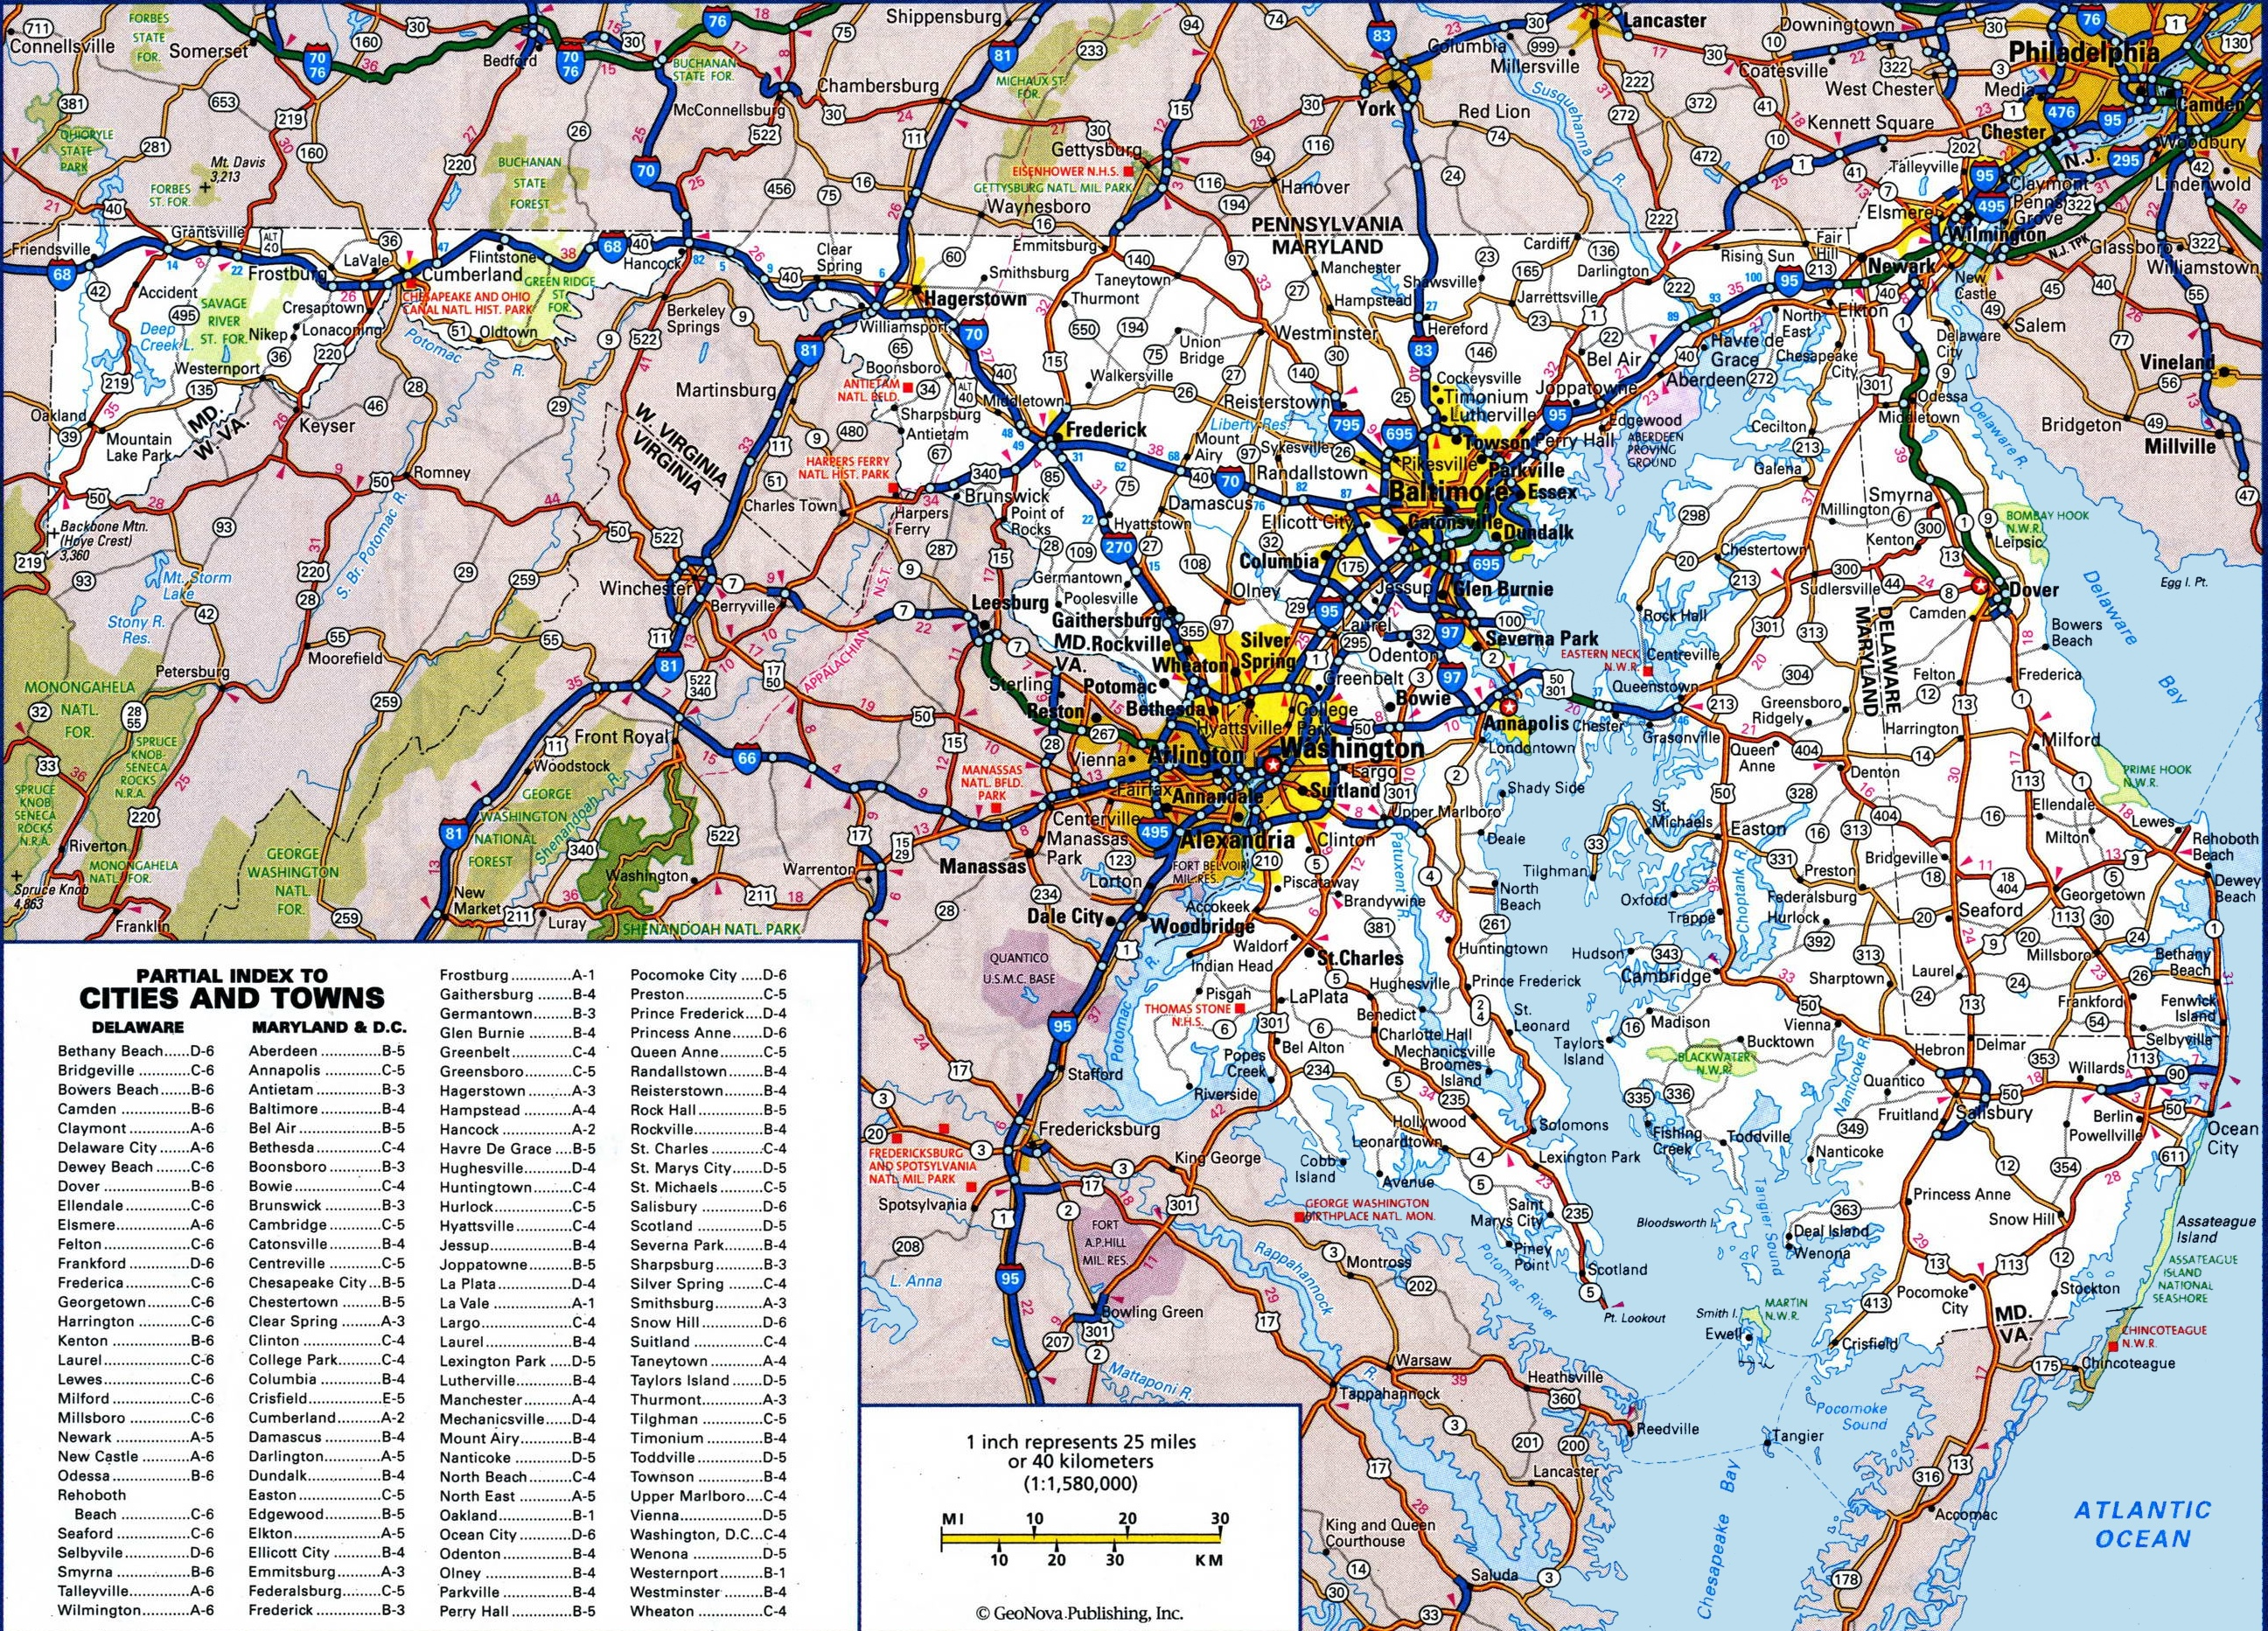 Worksheet. Large detailed map of Maryland with cities and towns